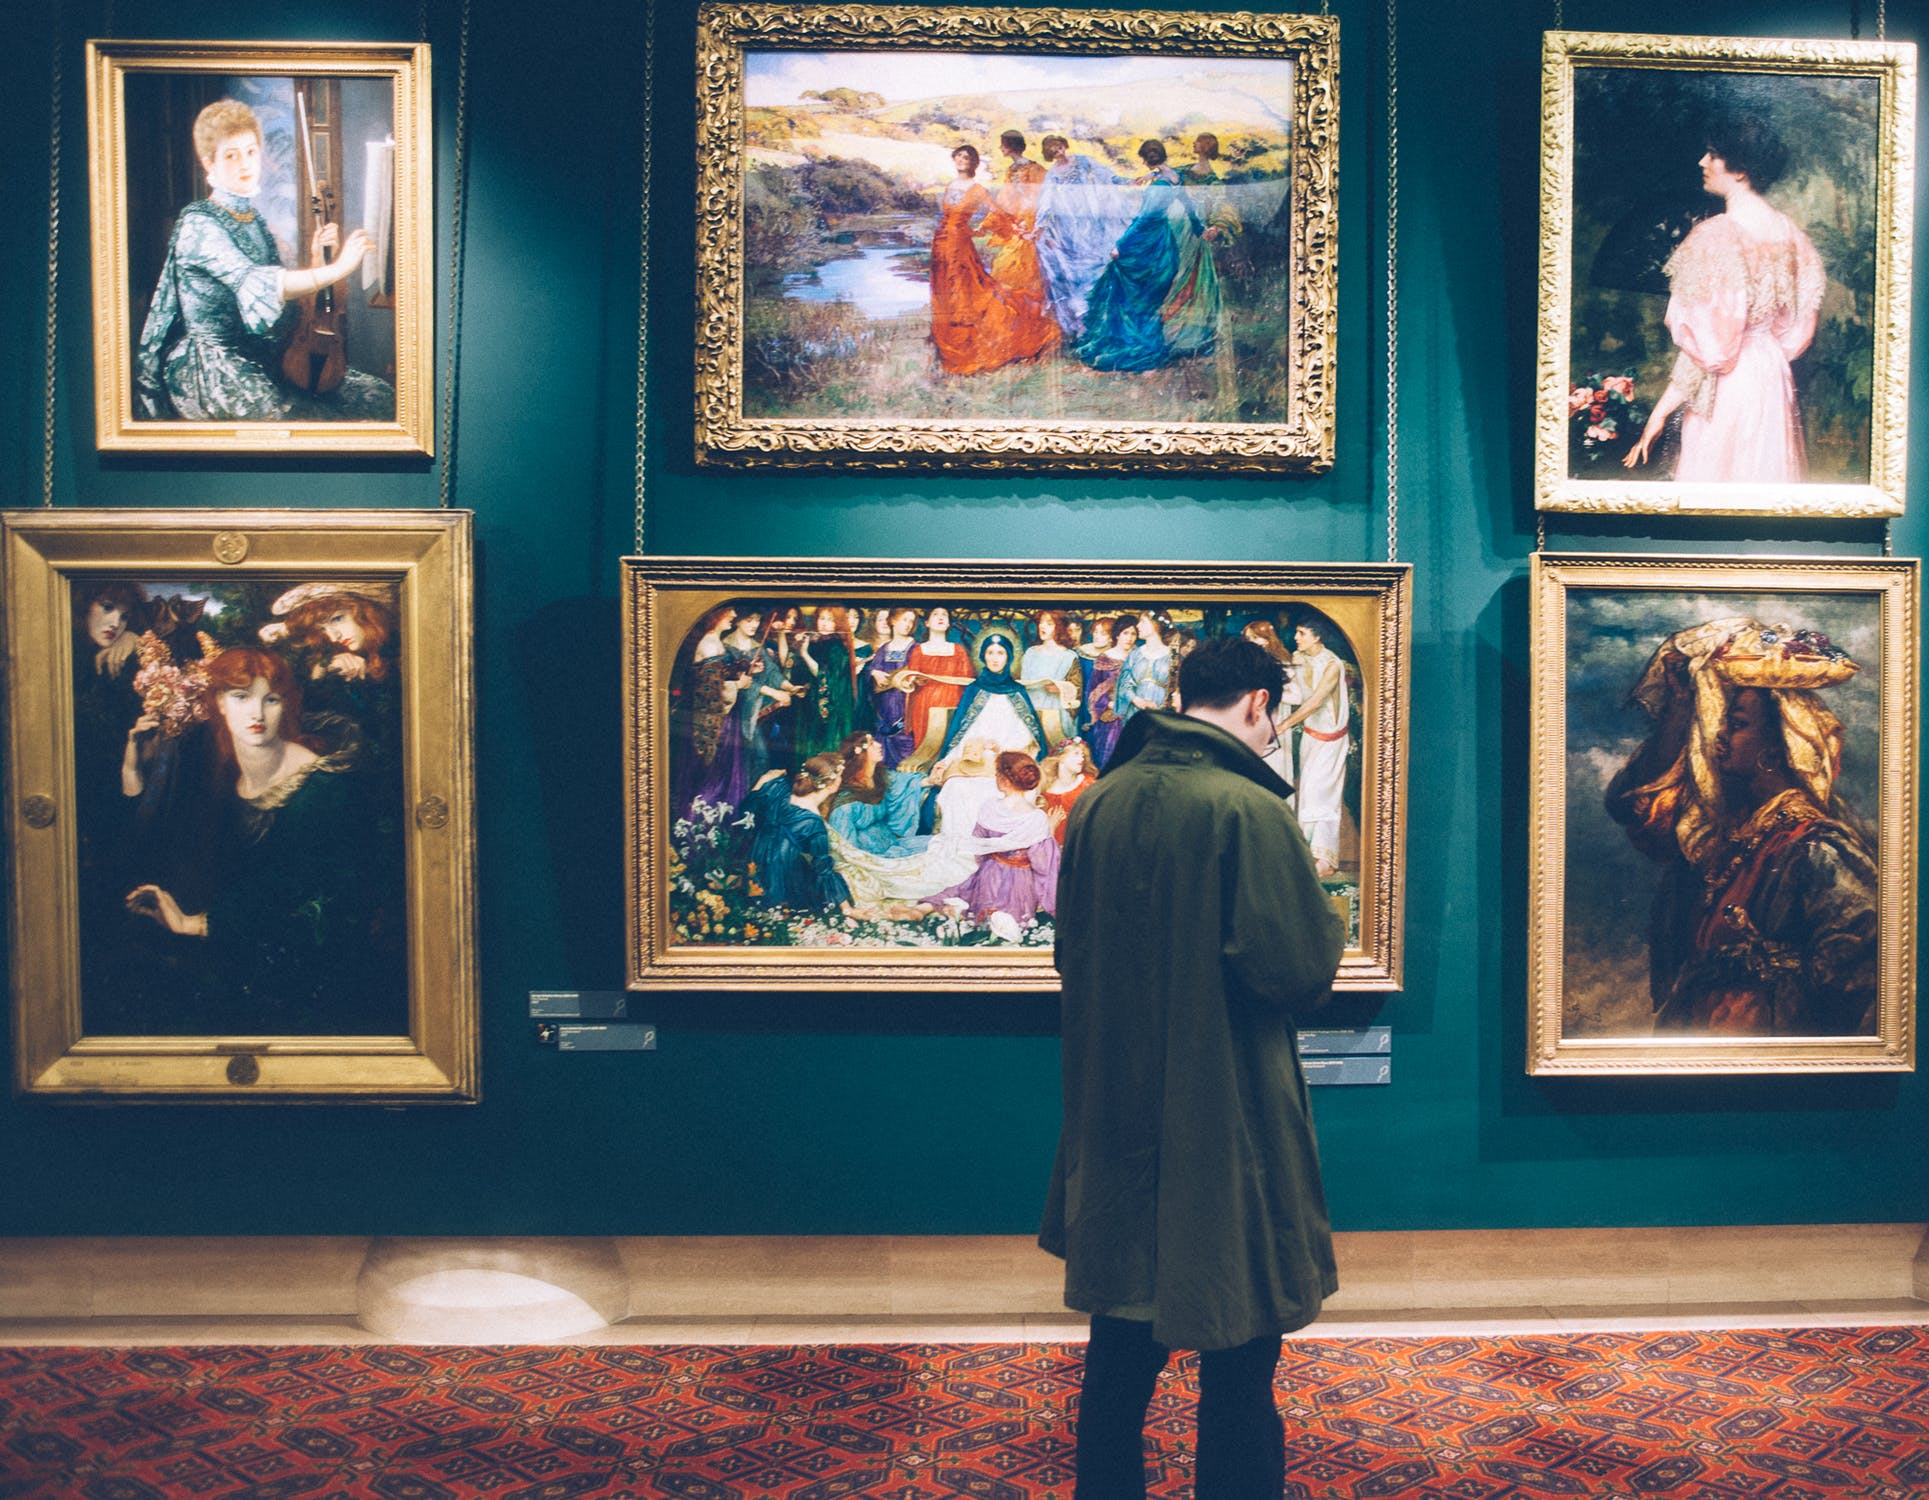 How to Get a Free and Complete Online Art History Education